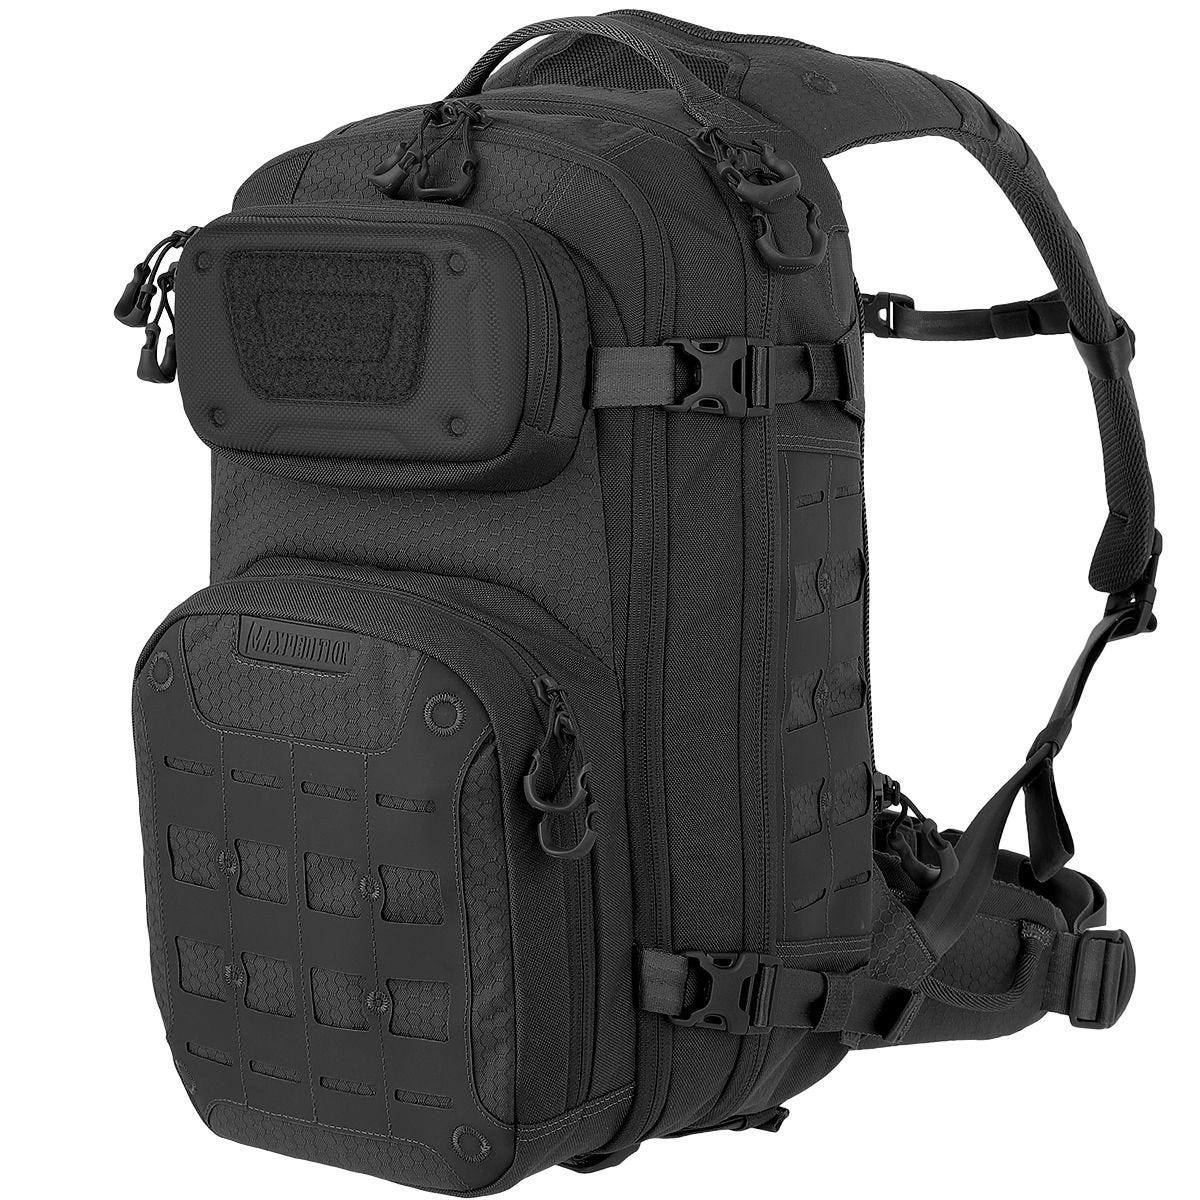 The Maxpedition RiftCore Backpack travel product recommended by Lukas on Lifney.